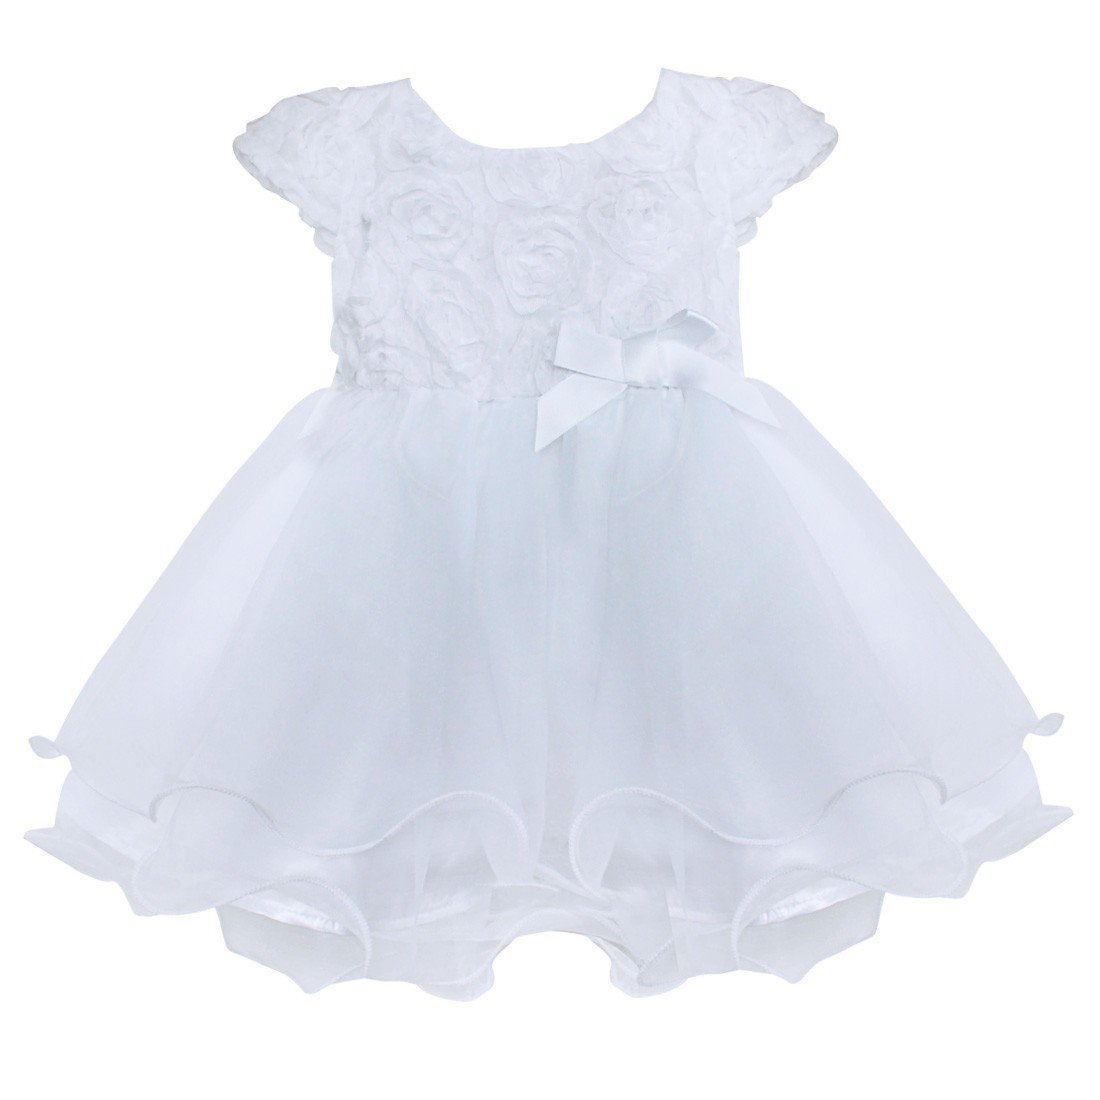 Freebily Infant Baby Flower Girl Dress Baptism Christening Gown Party Wedding Dress White 0-3 Months